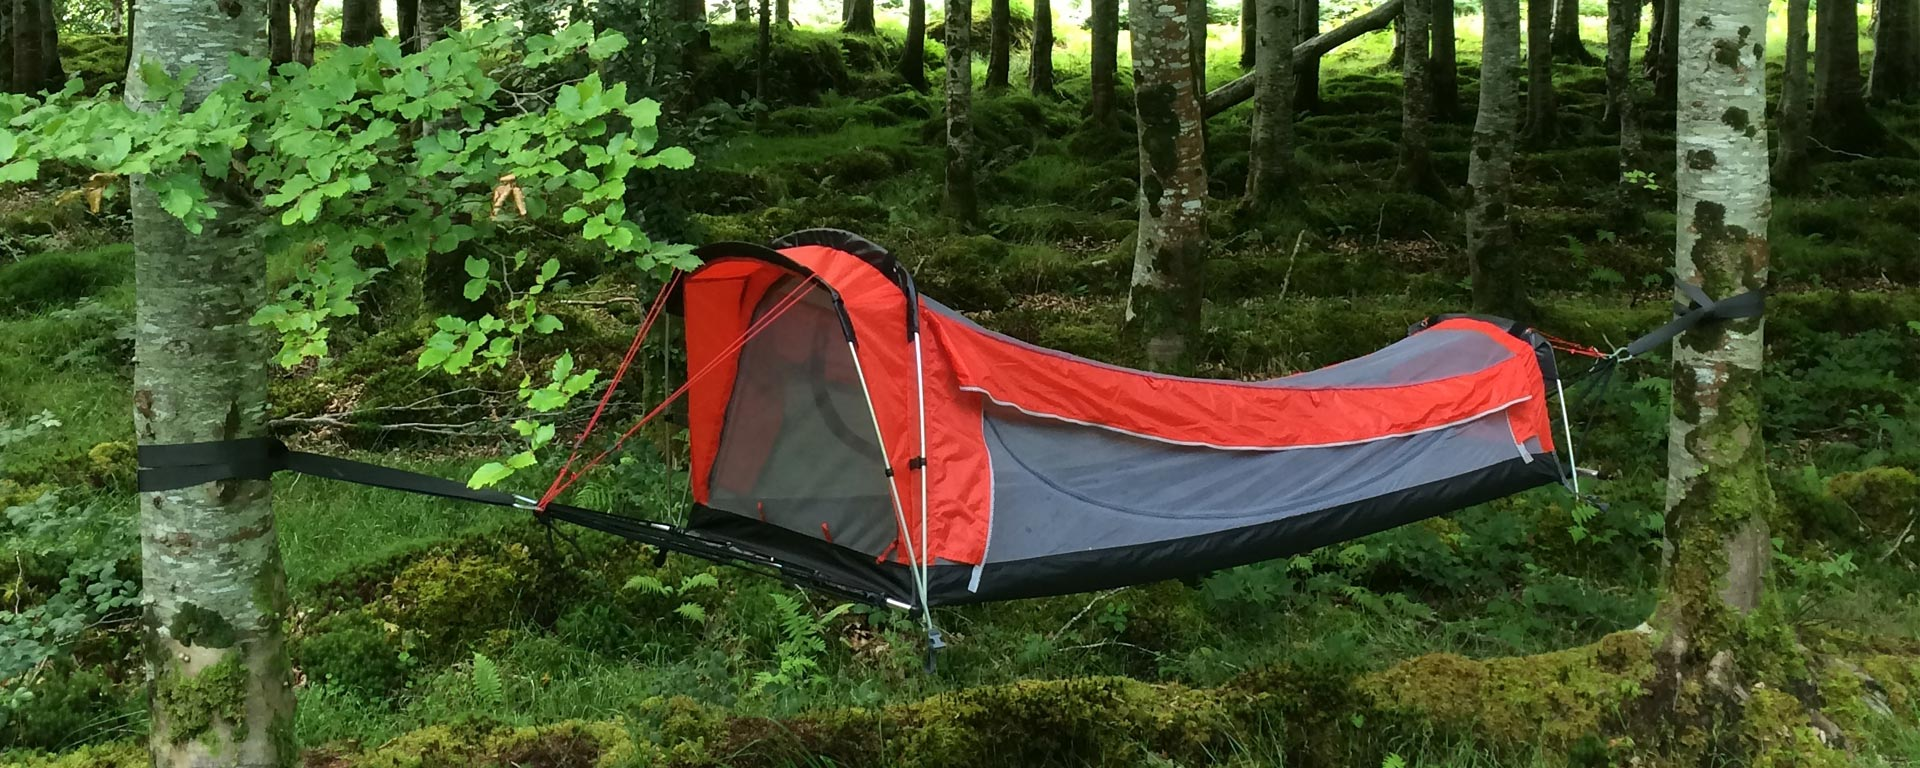 The Ultimate Travel Tent Crua Hybrid & The Ultimate Travel Tent: Crua Hybrid u2013 OuiTravel